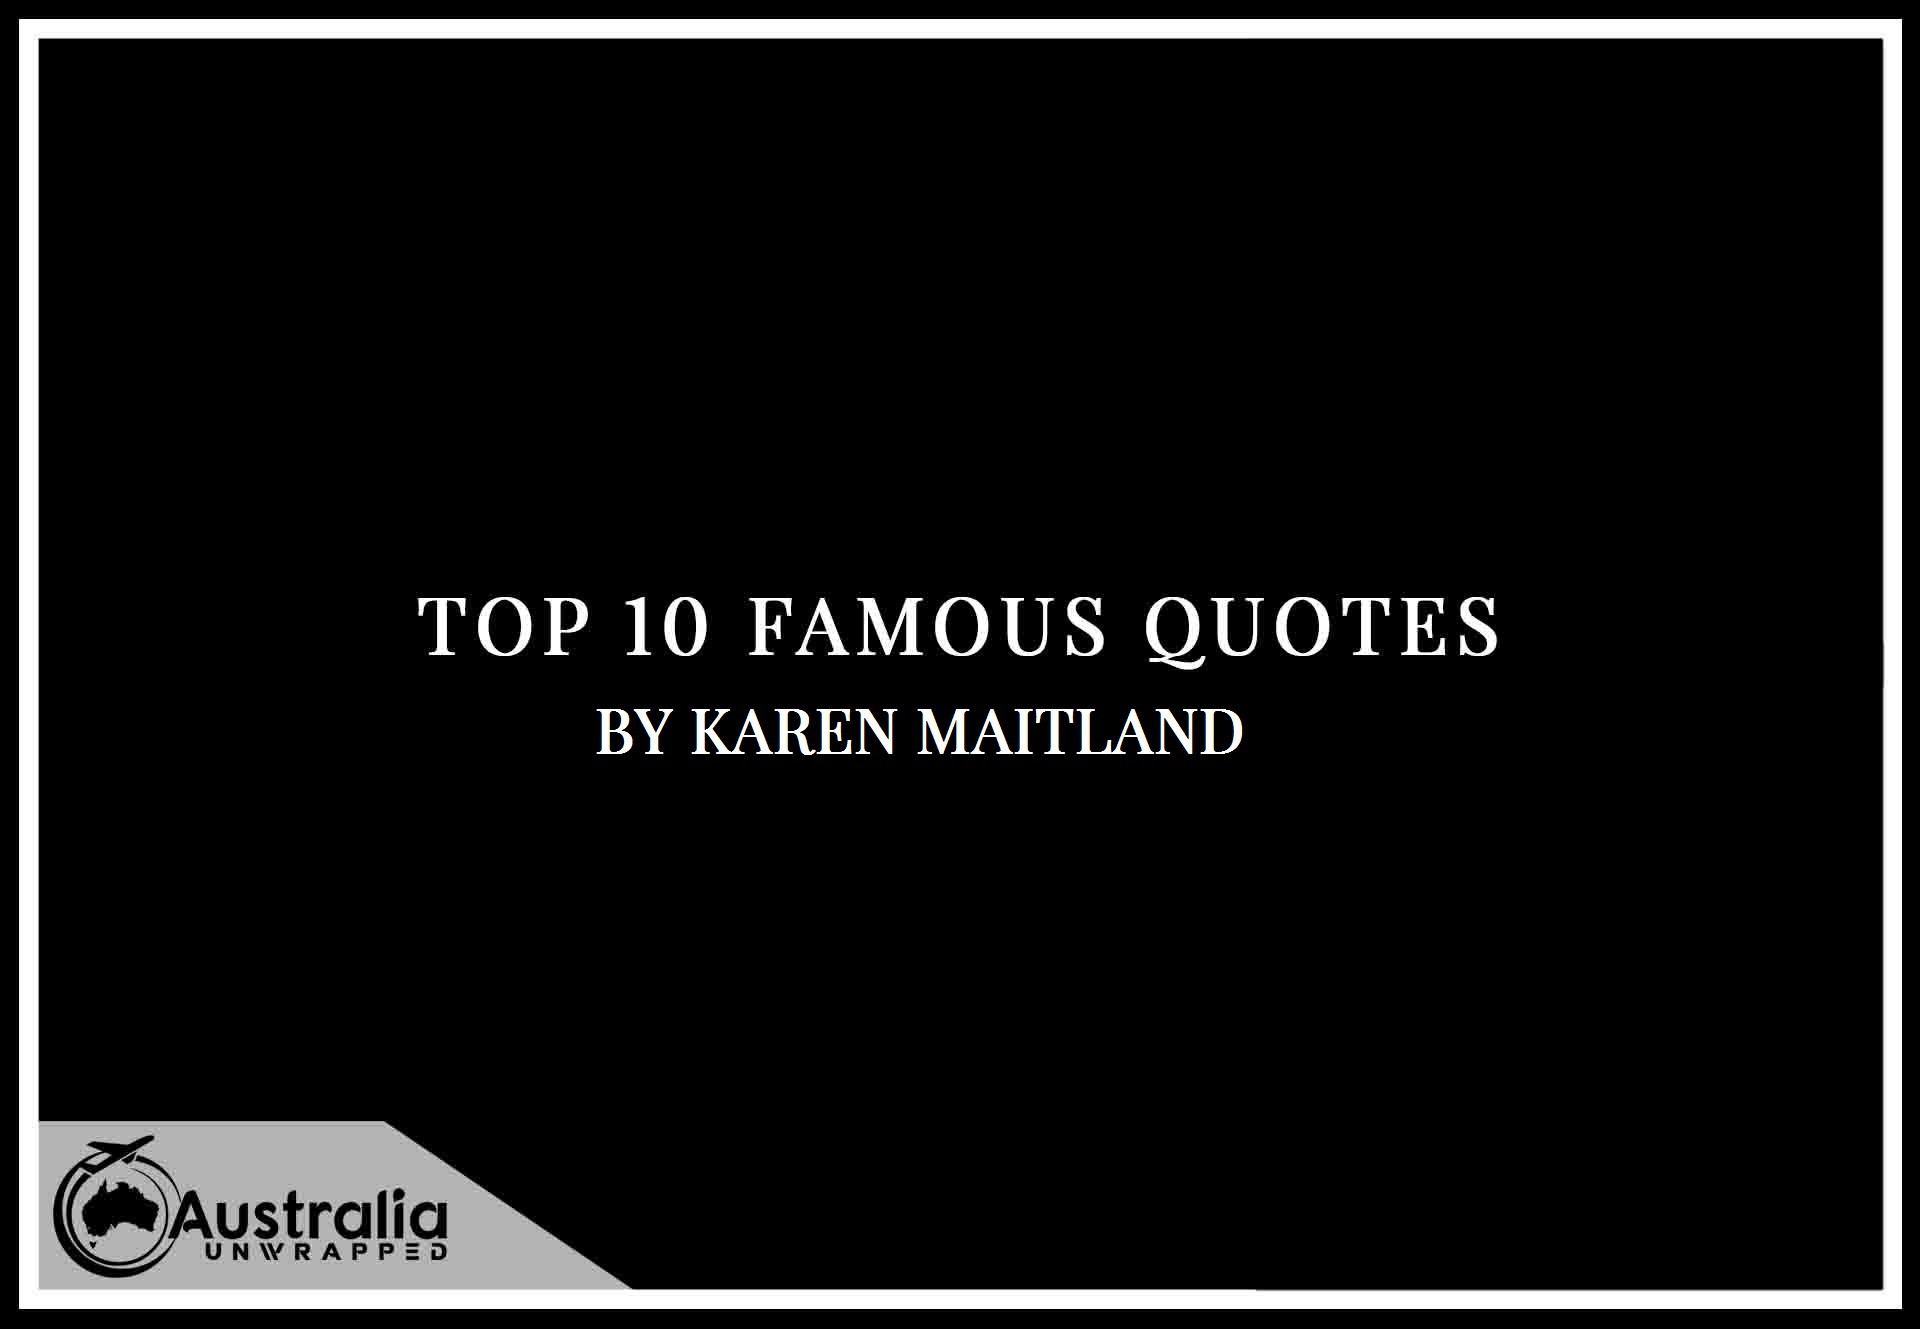 Karen Maitland's Top 10 Popular and Famous Quotes